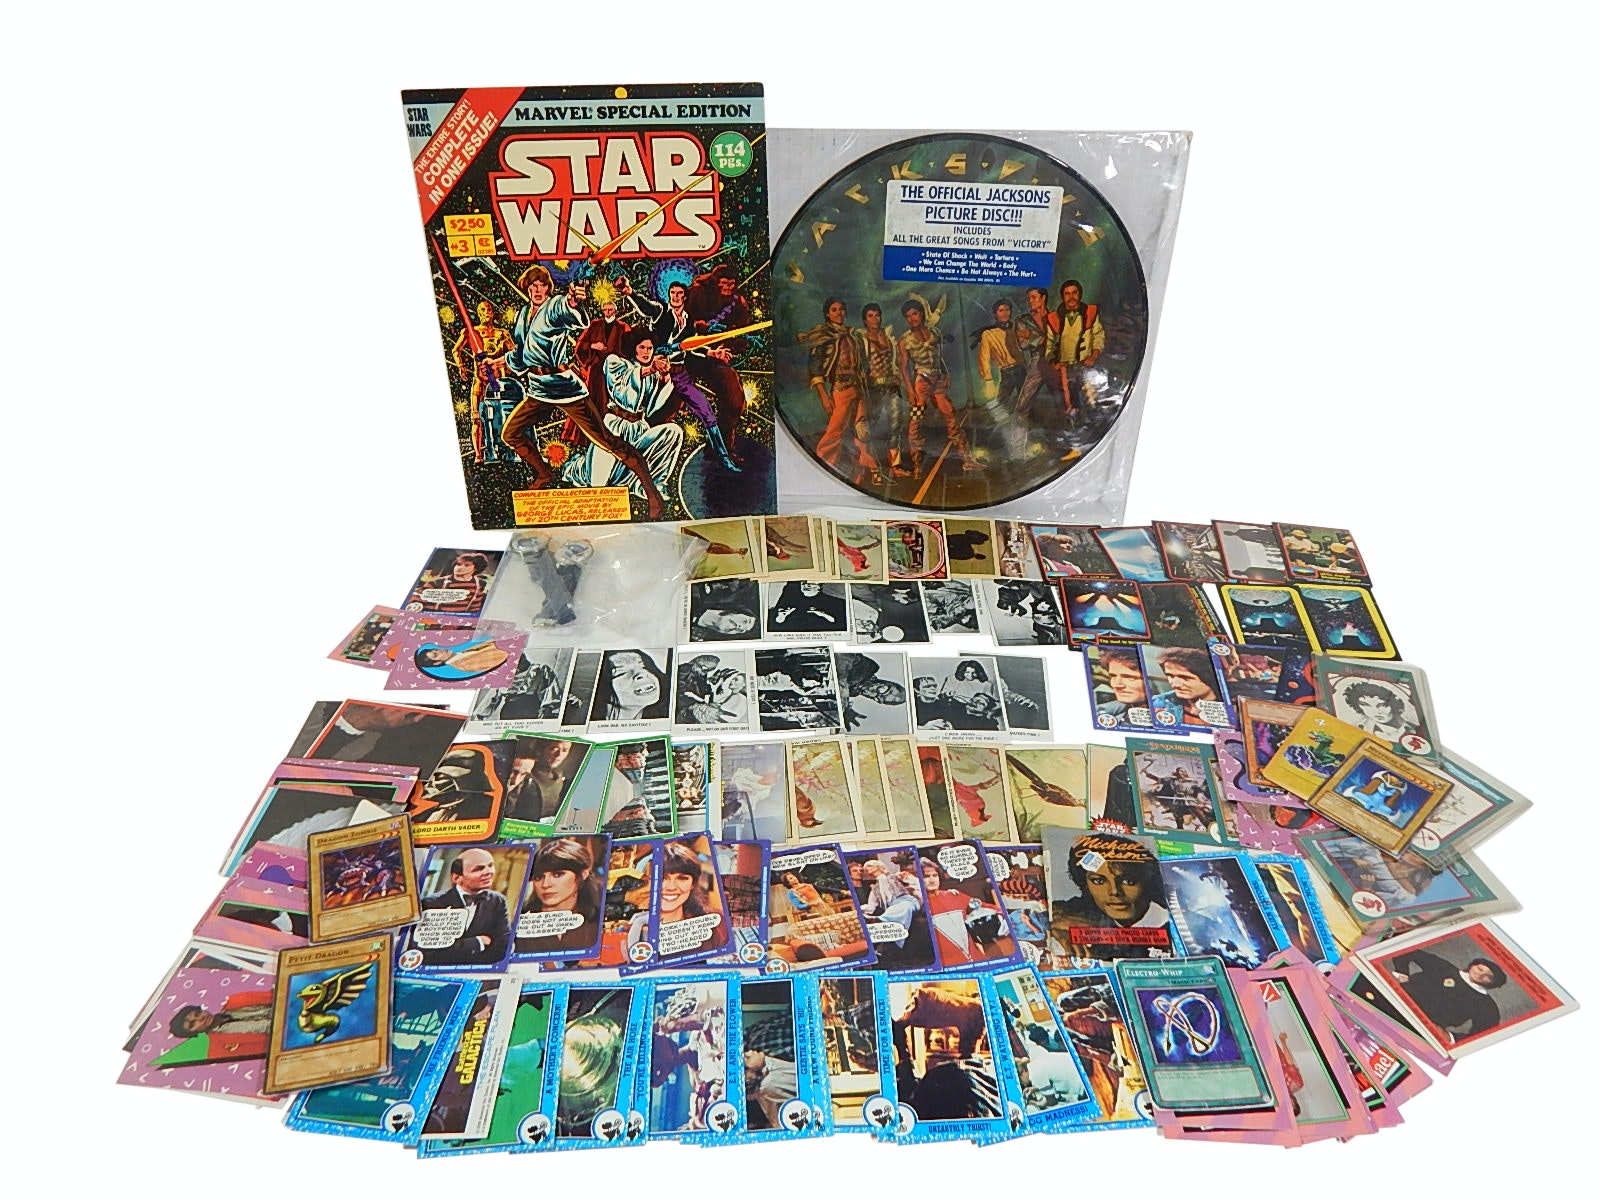 Star Wars Collectibles, Non-Sport Cards, 1984 CBS Michael Jackson Album,More